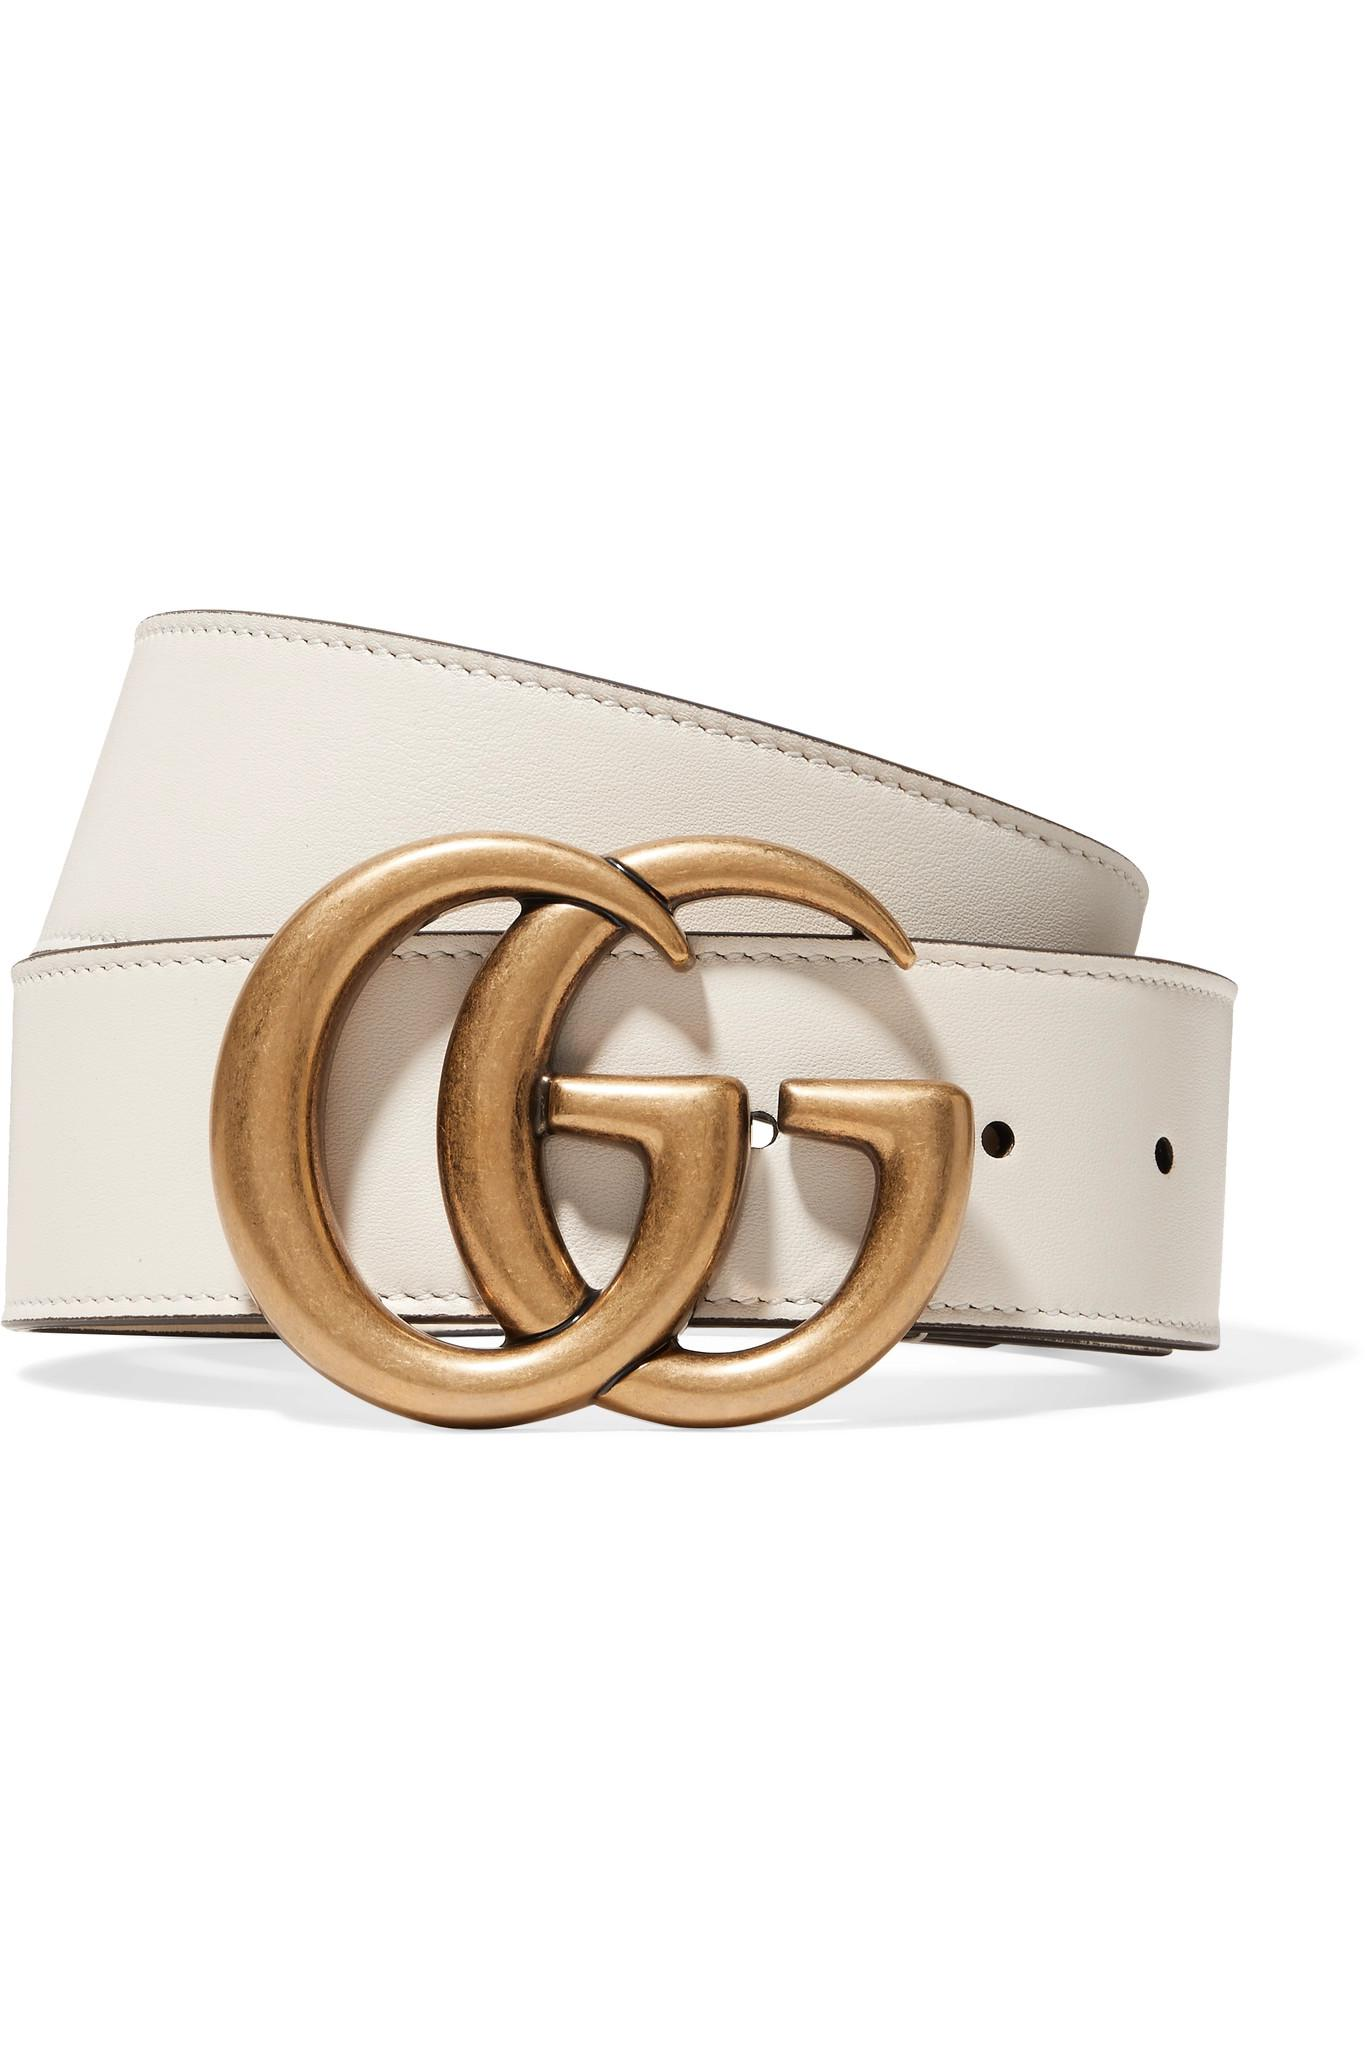 ce1337441f0 Gucci Leather Belt in White - Save 15% - Lyst